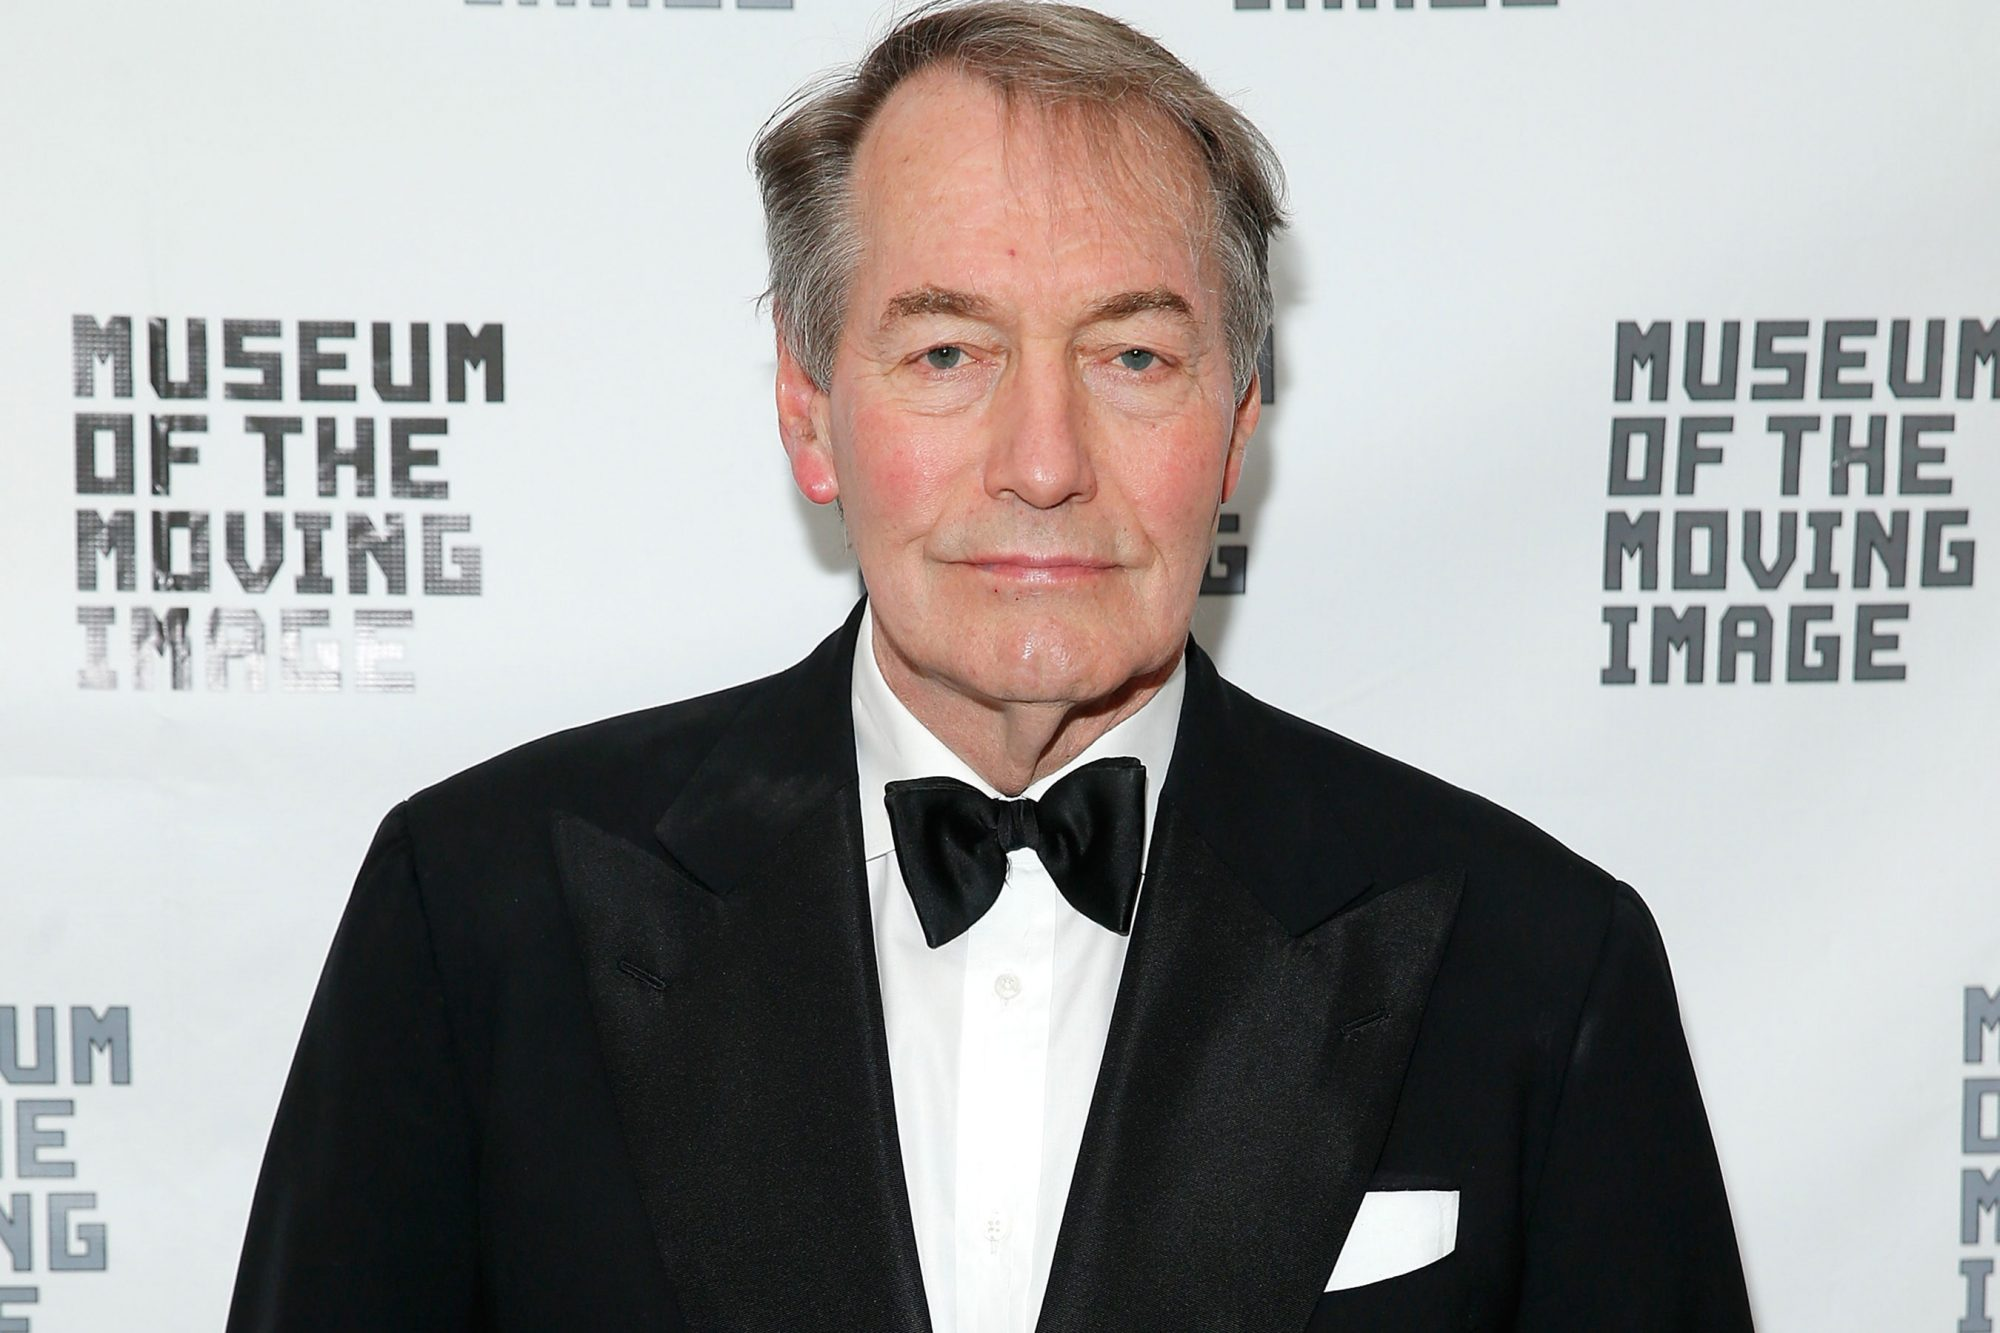 Museum Of The Moving Image Honors Richard Plepler & Charlie Rose